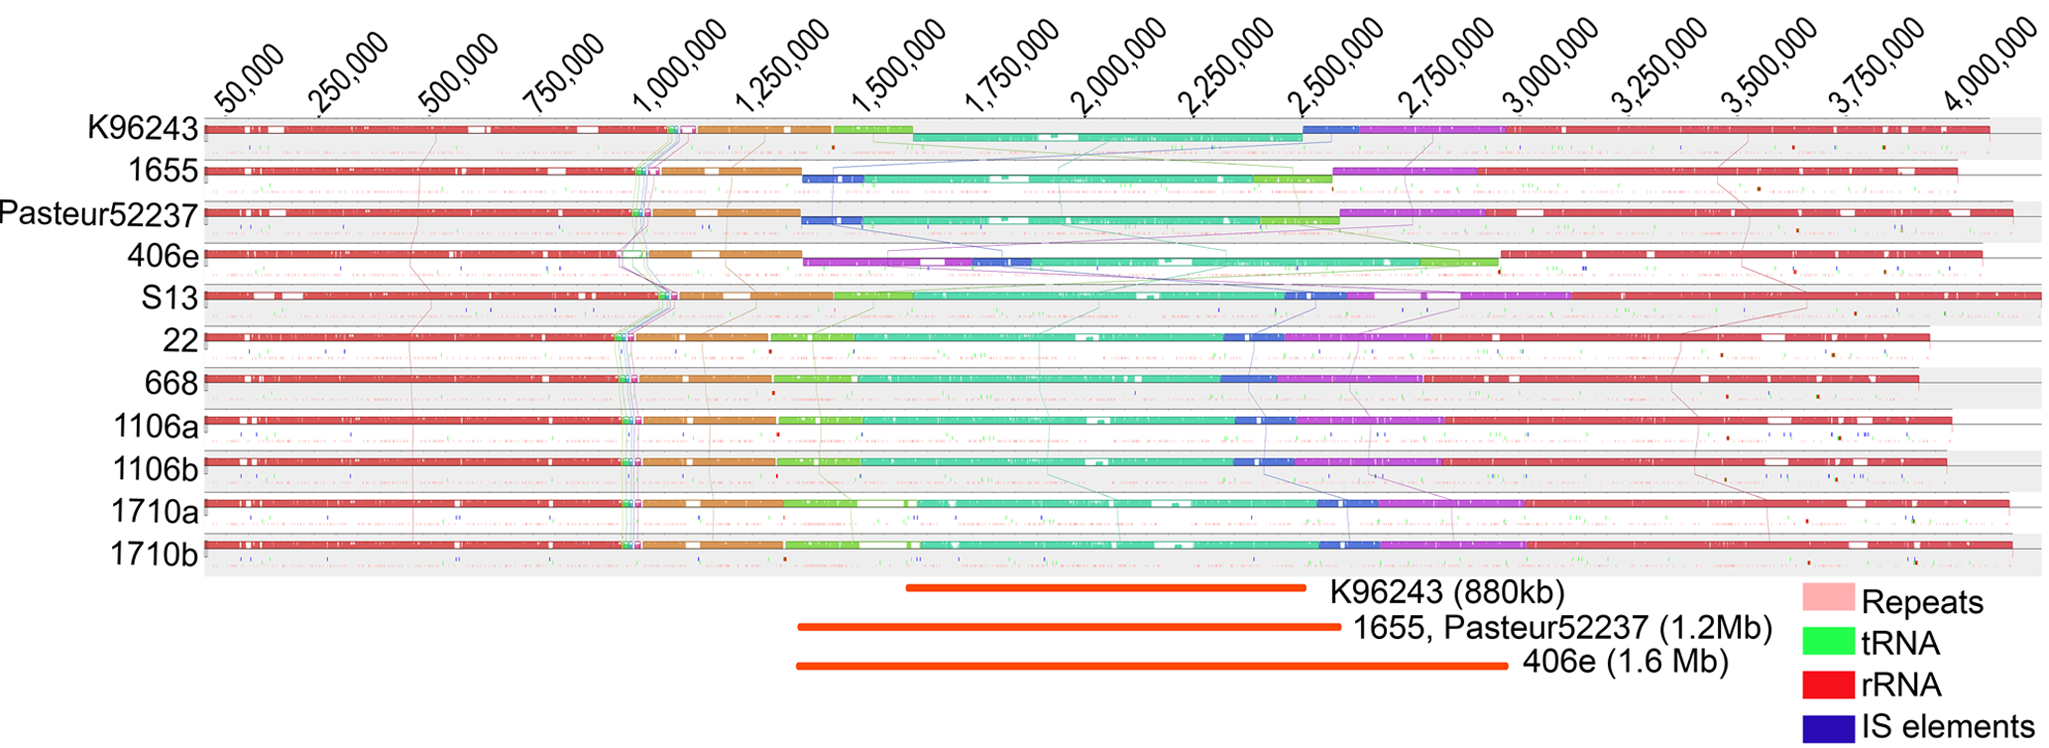 Genome Alignment of Bp Chromosome 1 Across Strains.